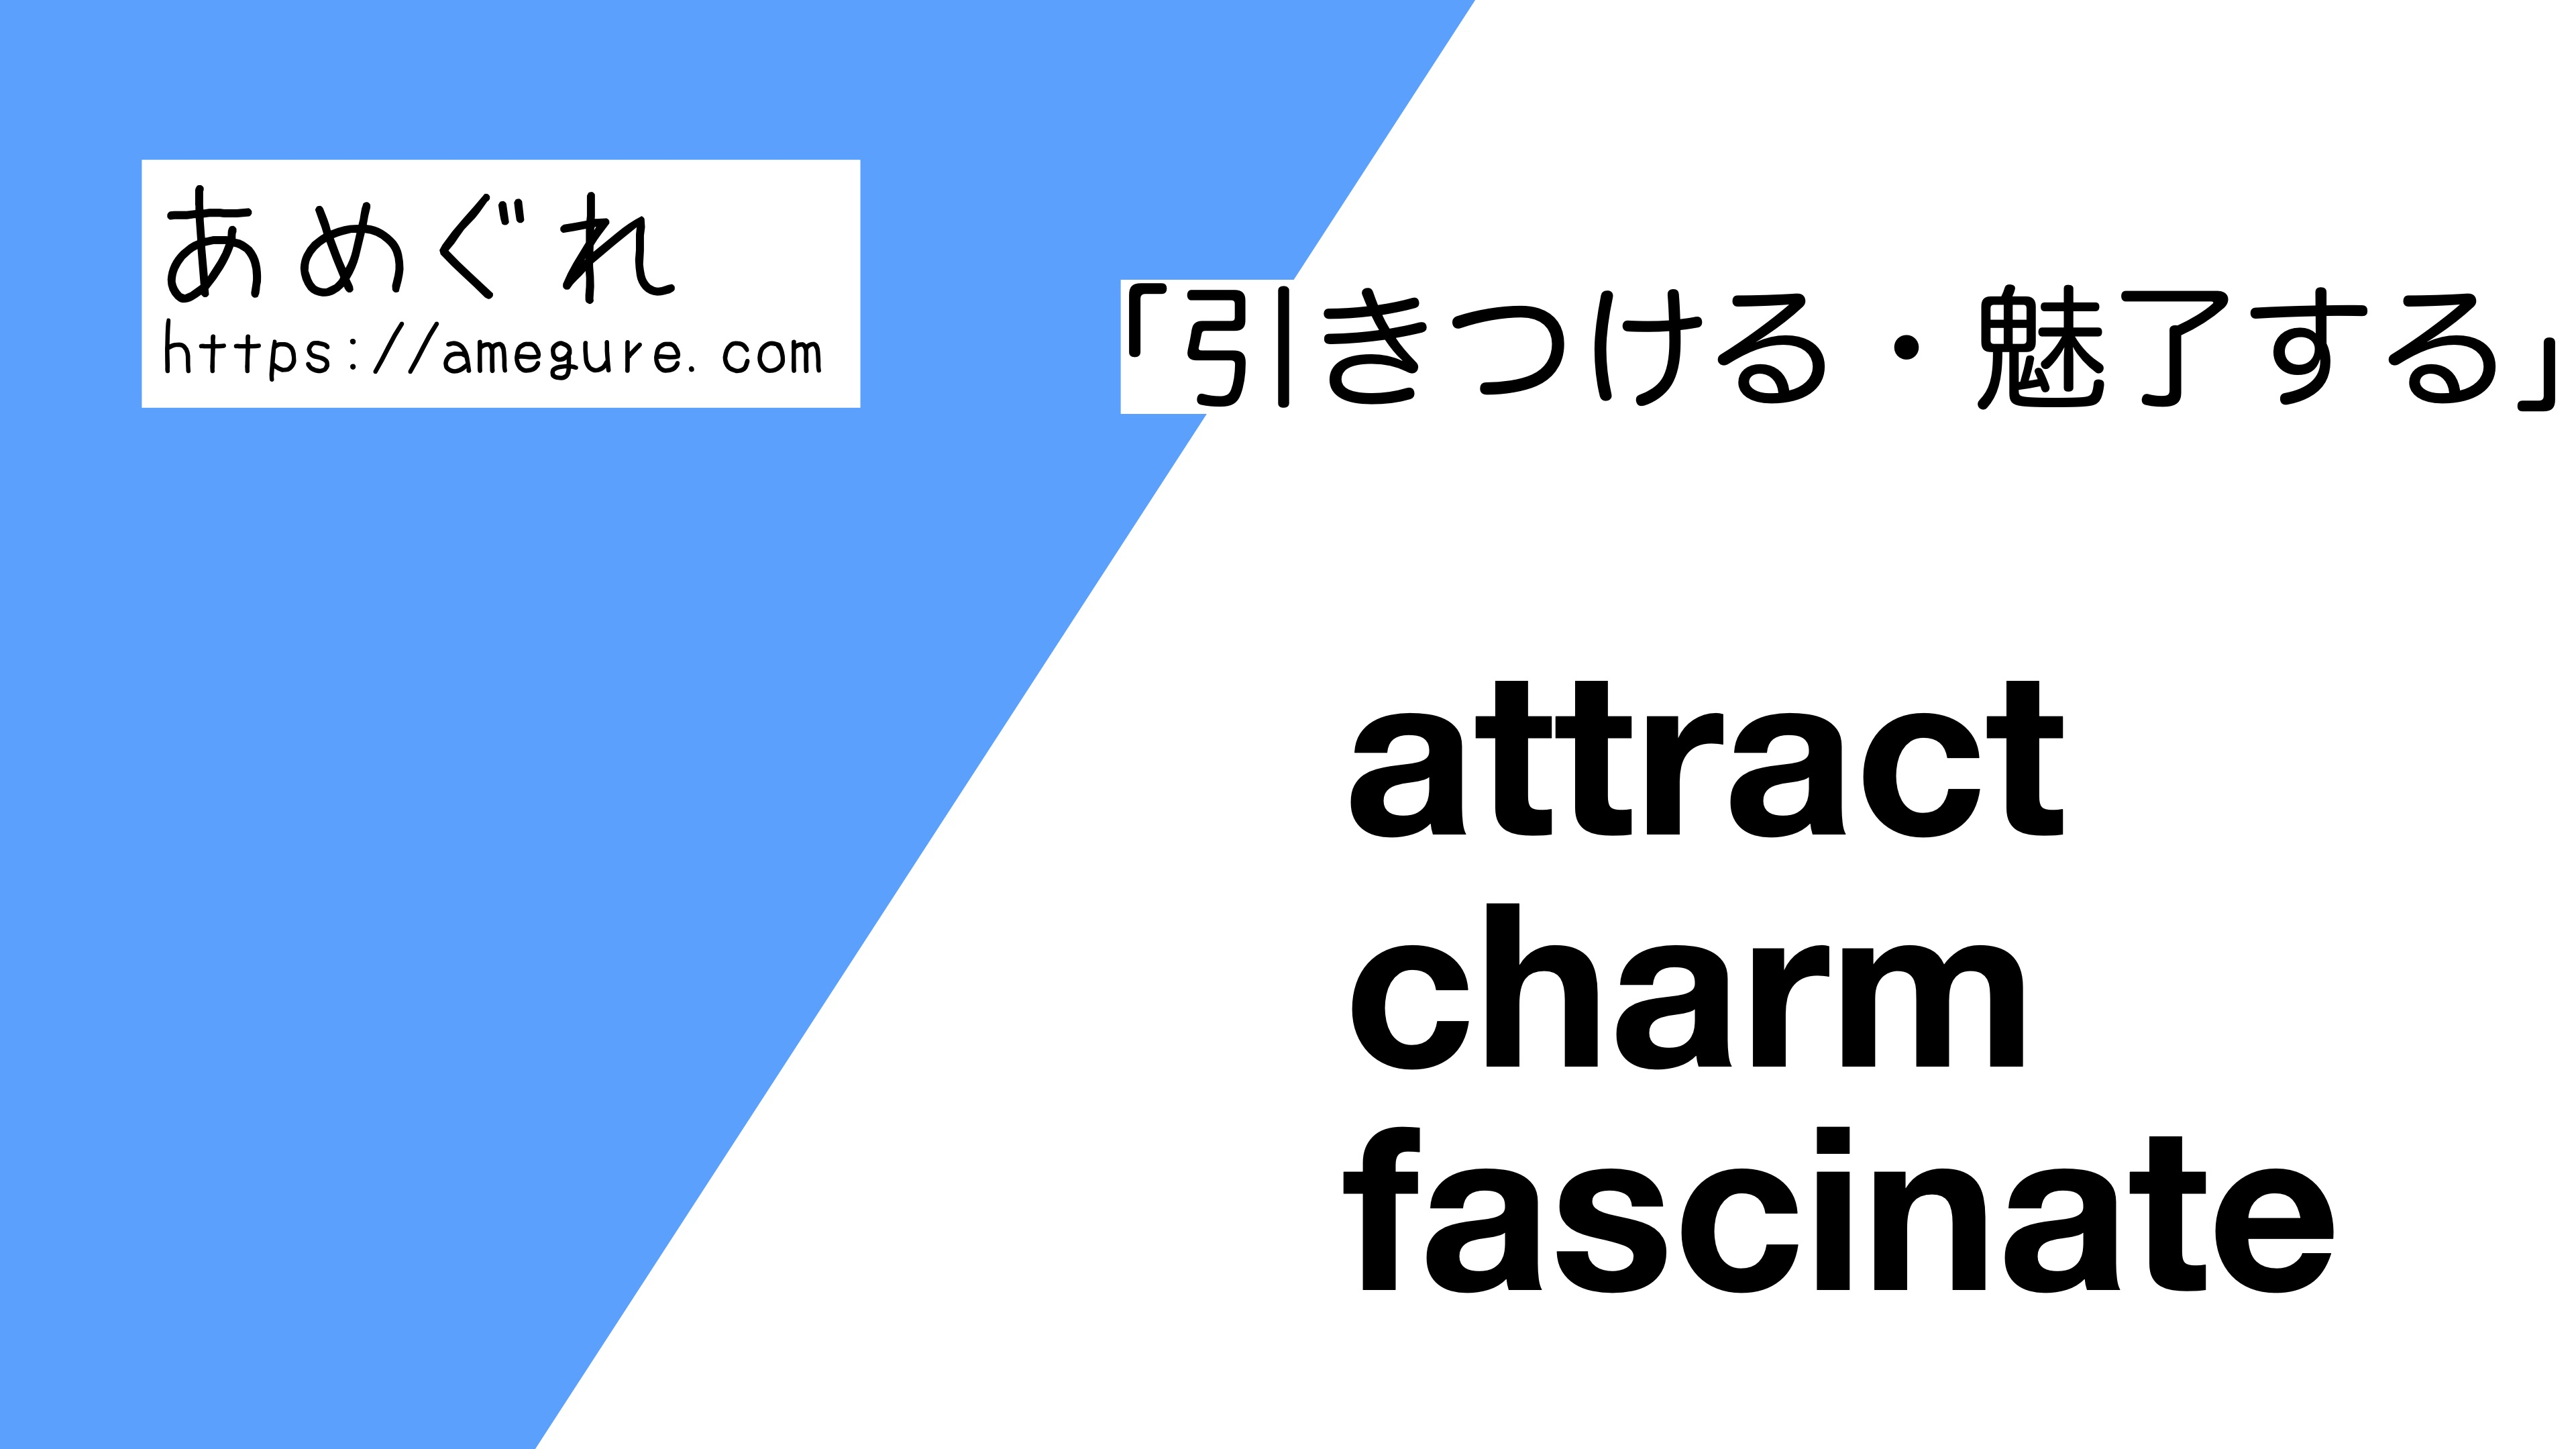 attract-charm-fascinate違い